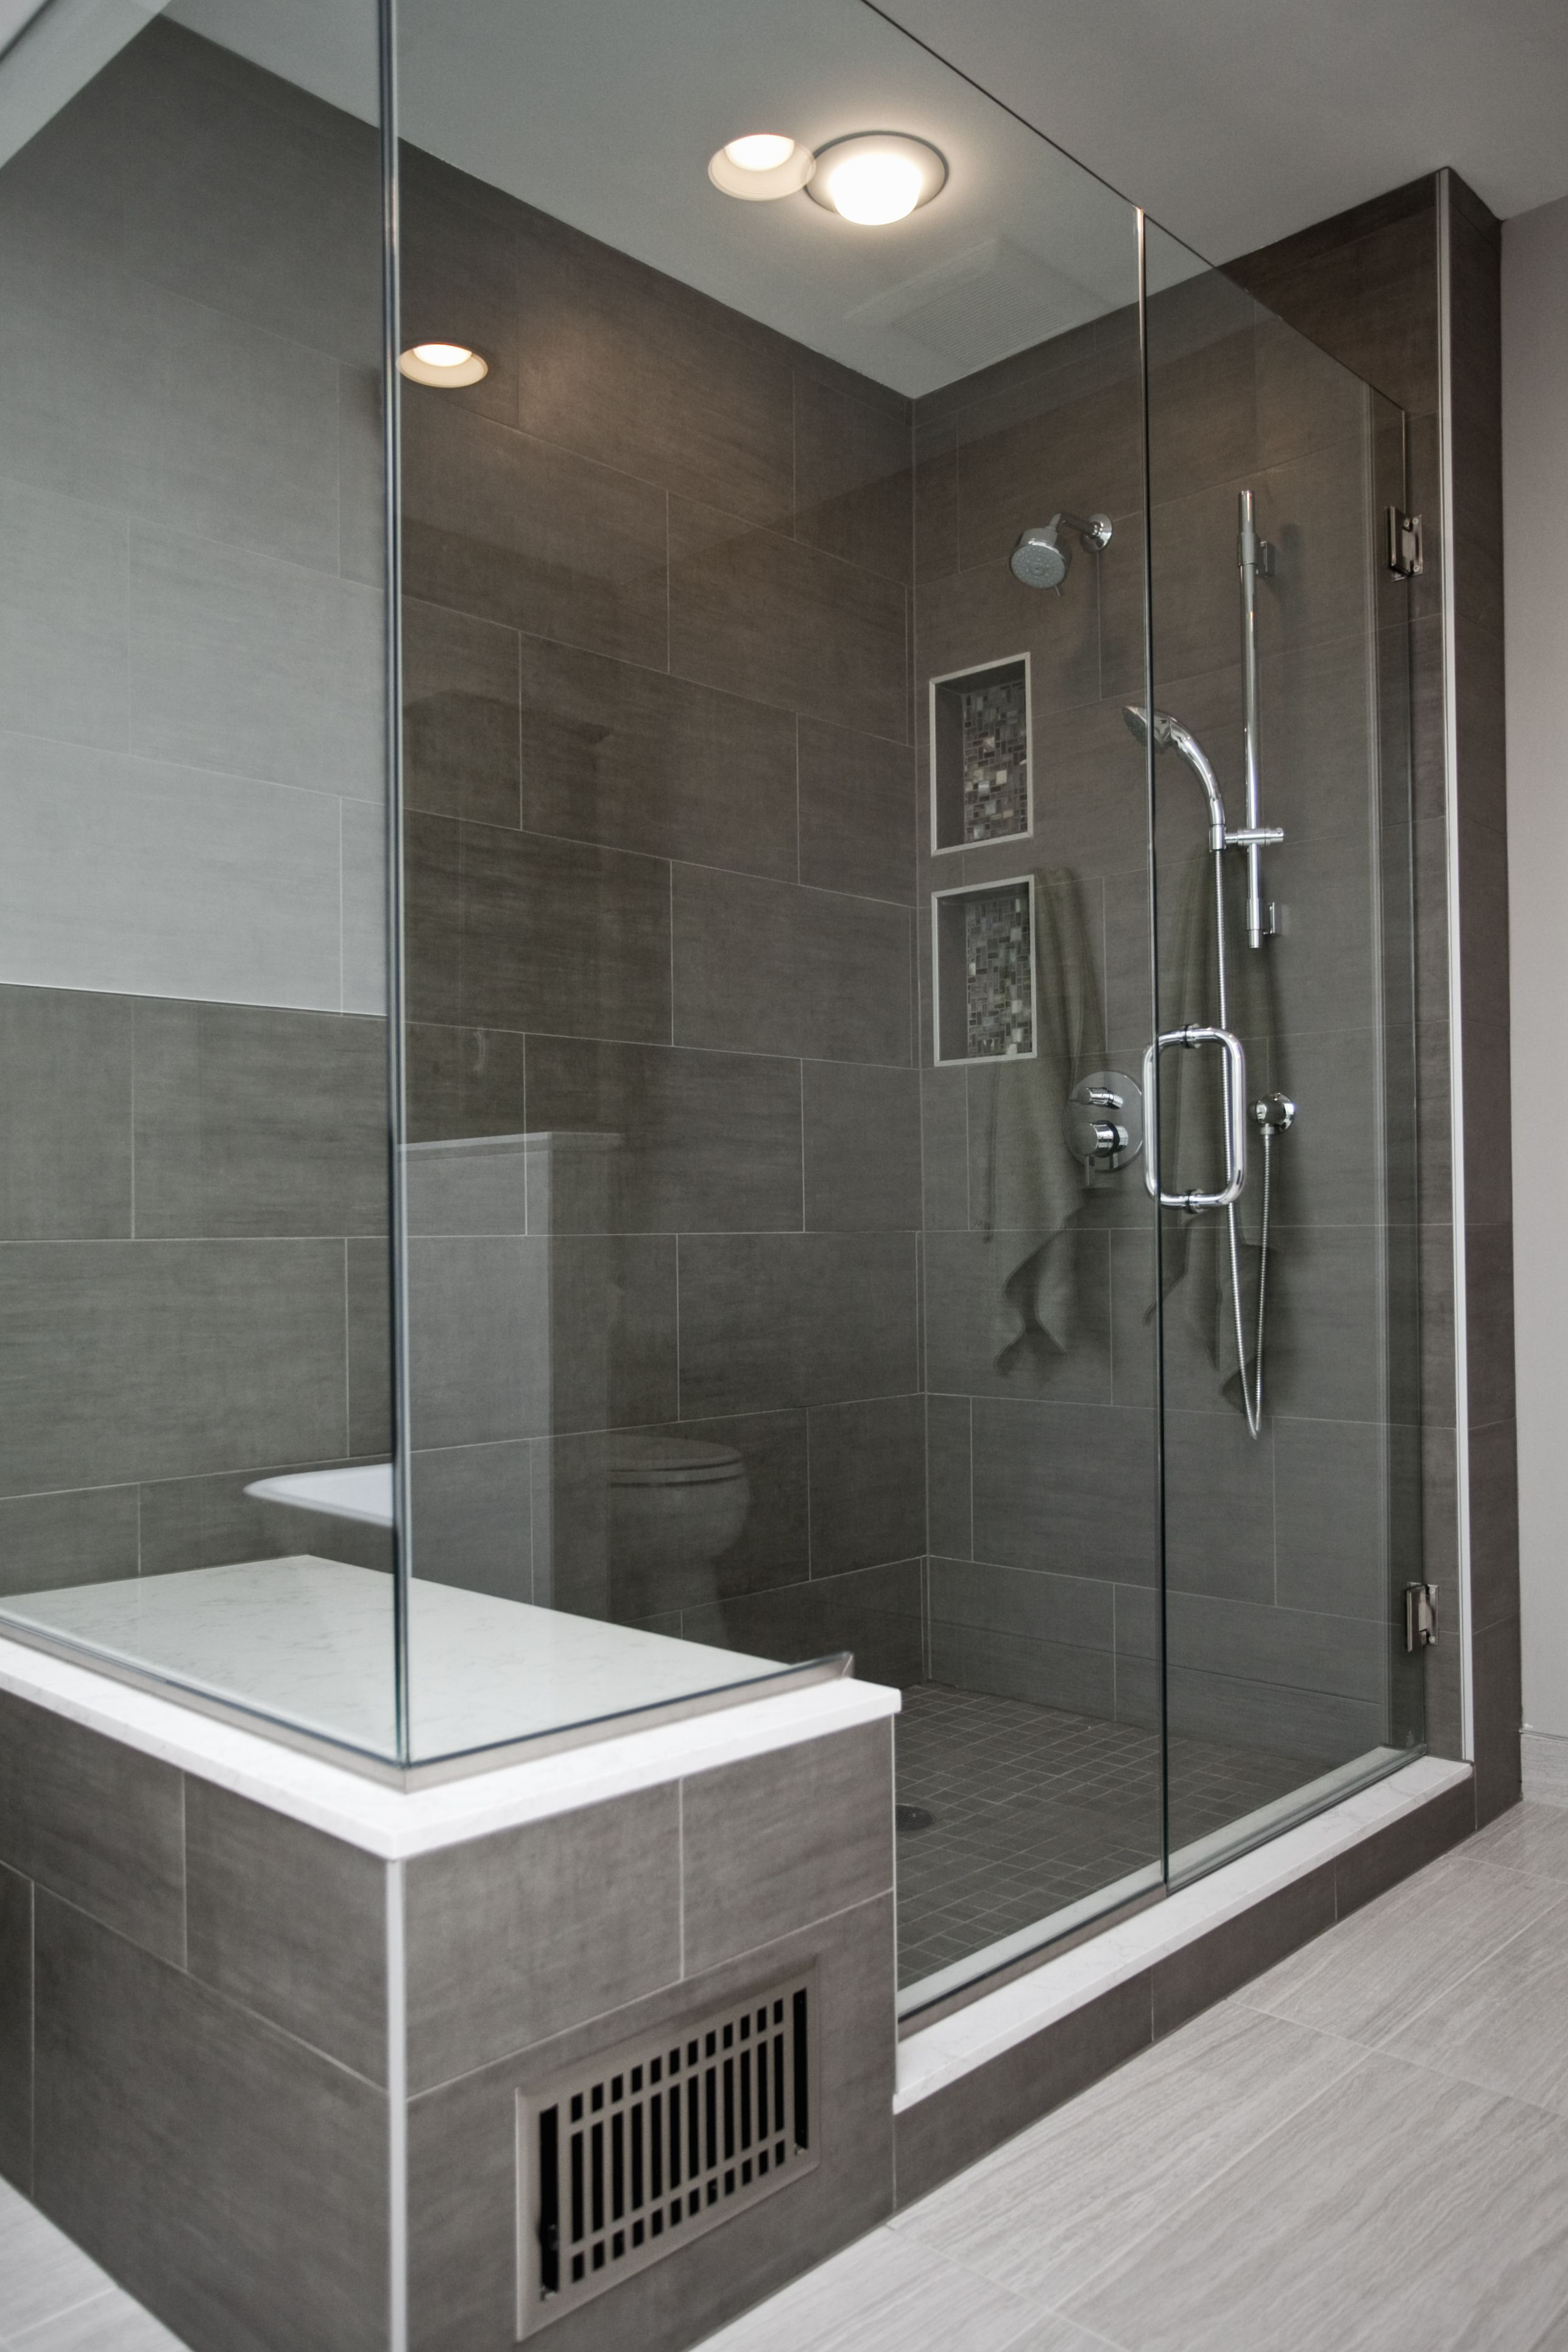 the shower residential austin company photos web of commercial page tx doors showers glass georgetown